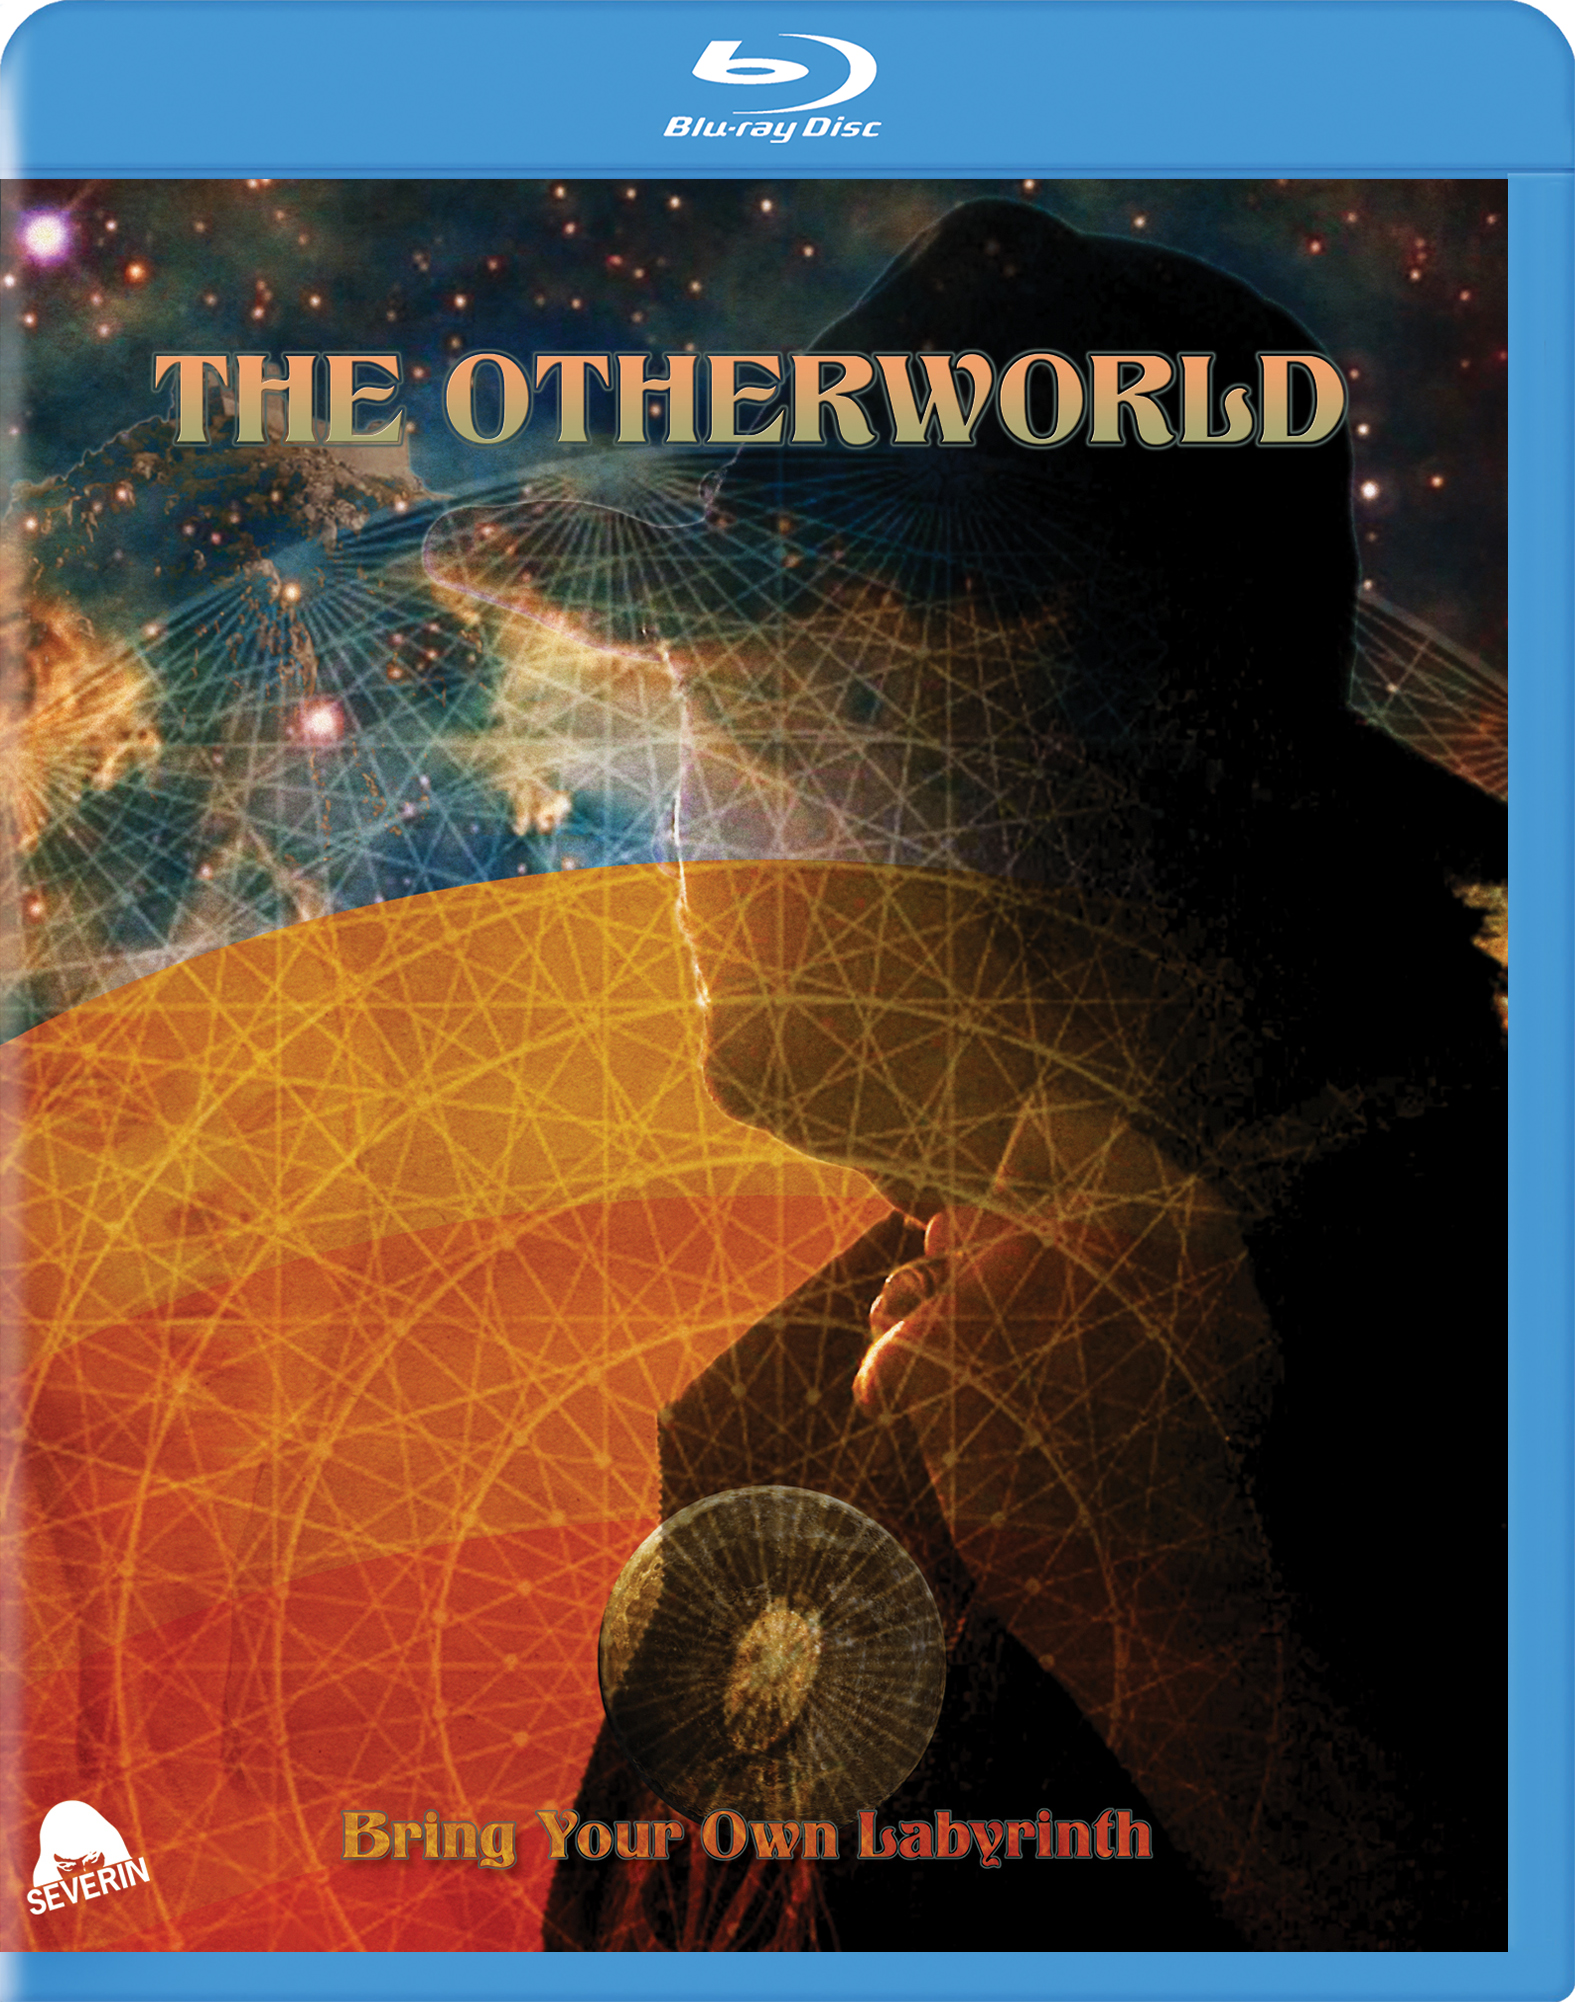 Otherworldly world: what is worth knowing